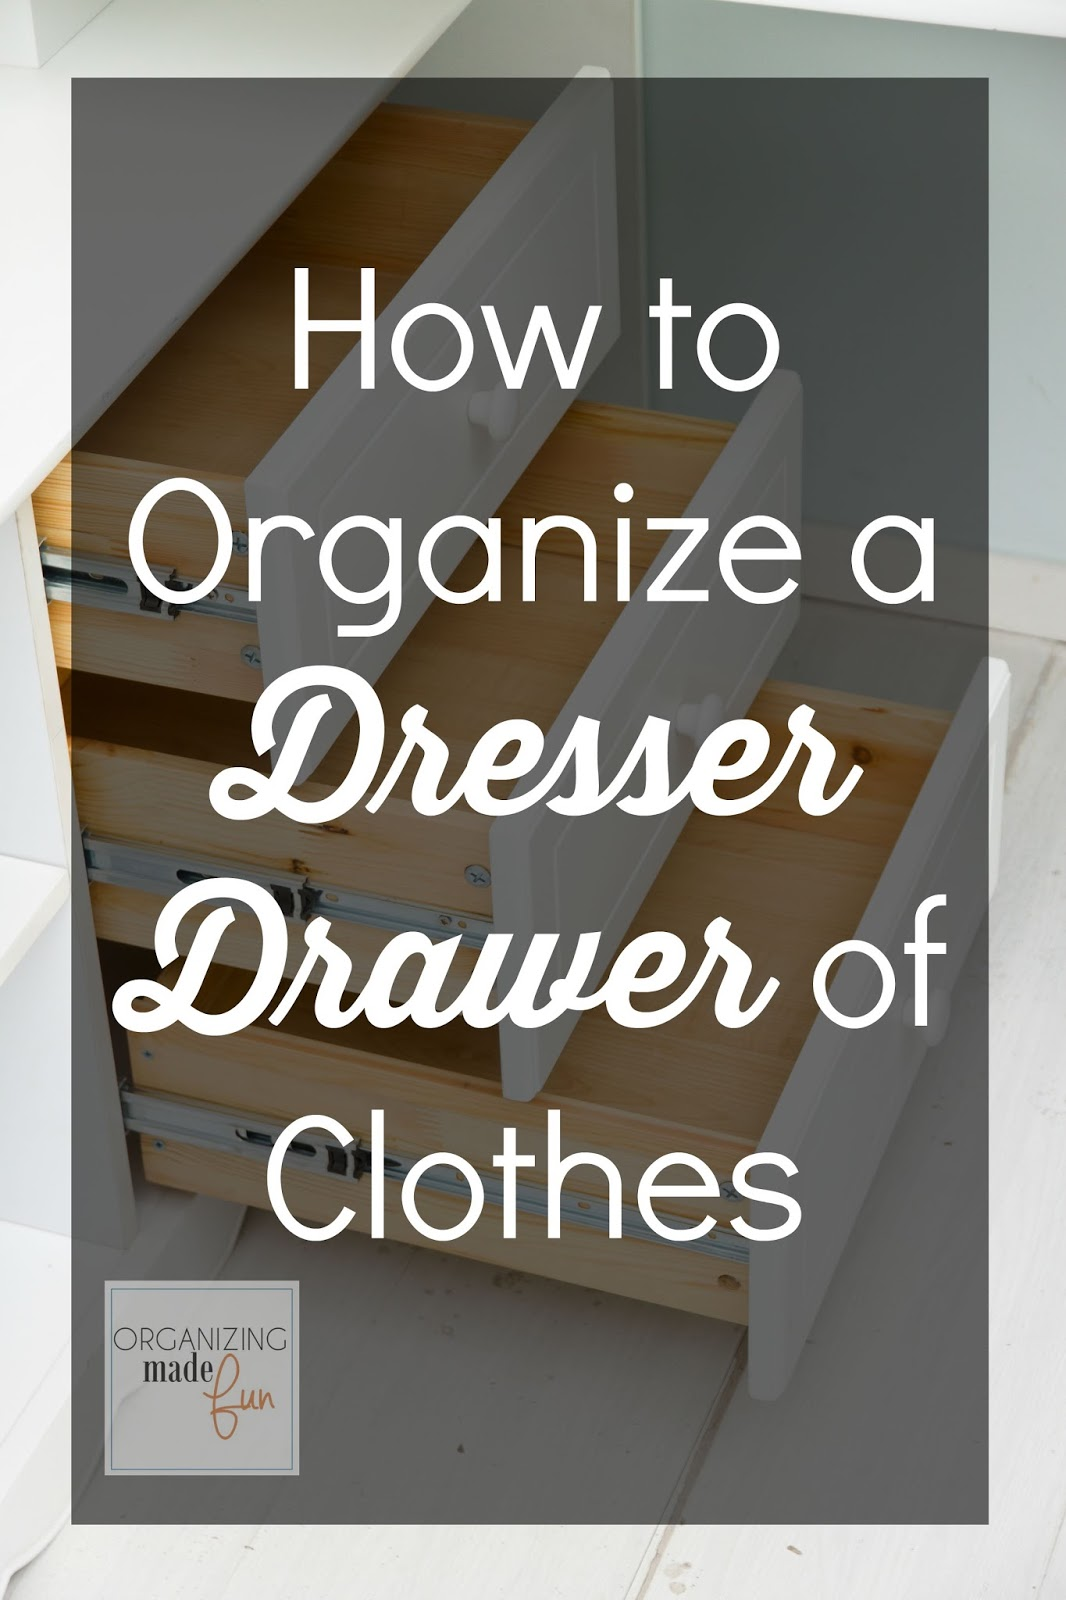 How To Organize A Dresser Drawer Of Clothes Organizingmadefun